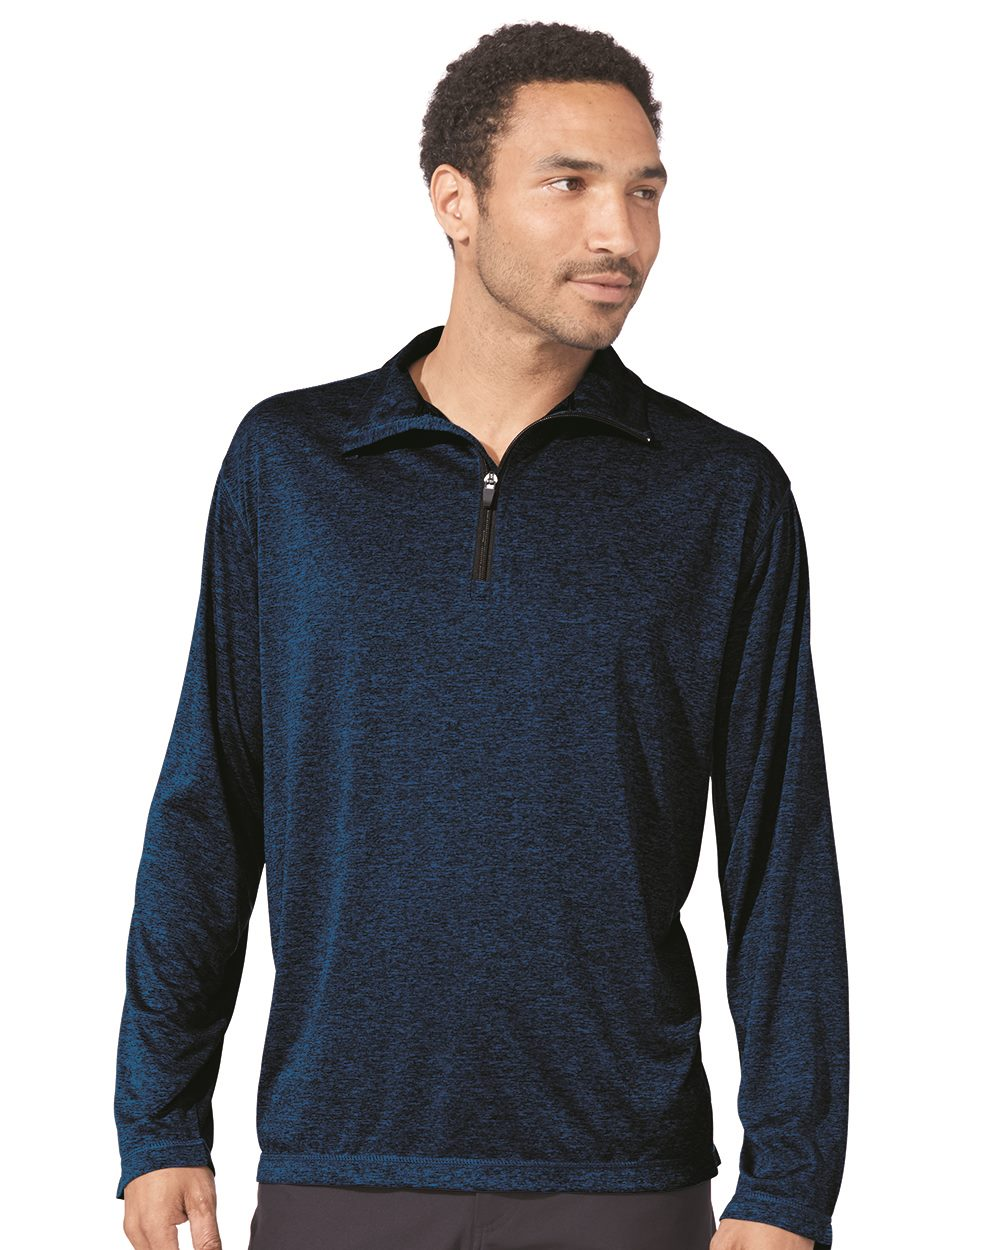 FeatherLite 3110 - Value Cationic Quarter-Zip Pullover